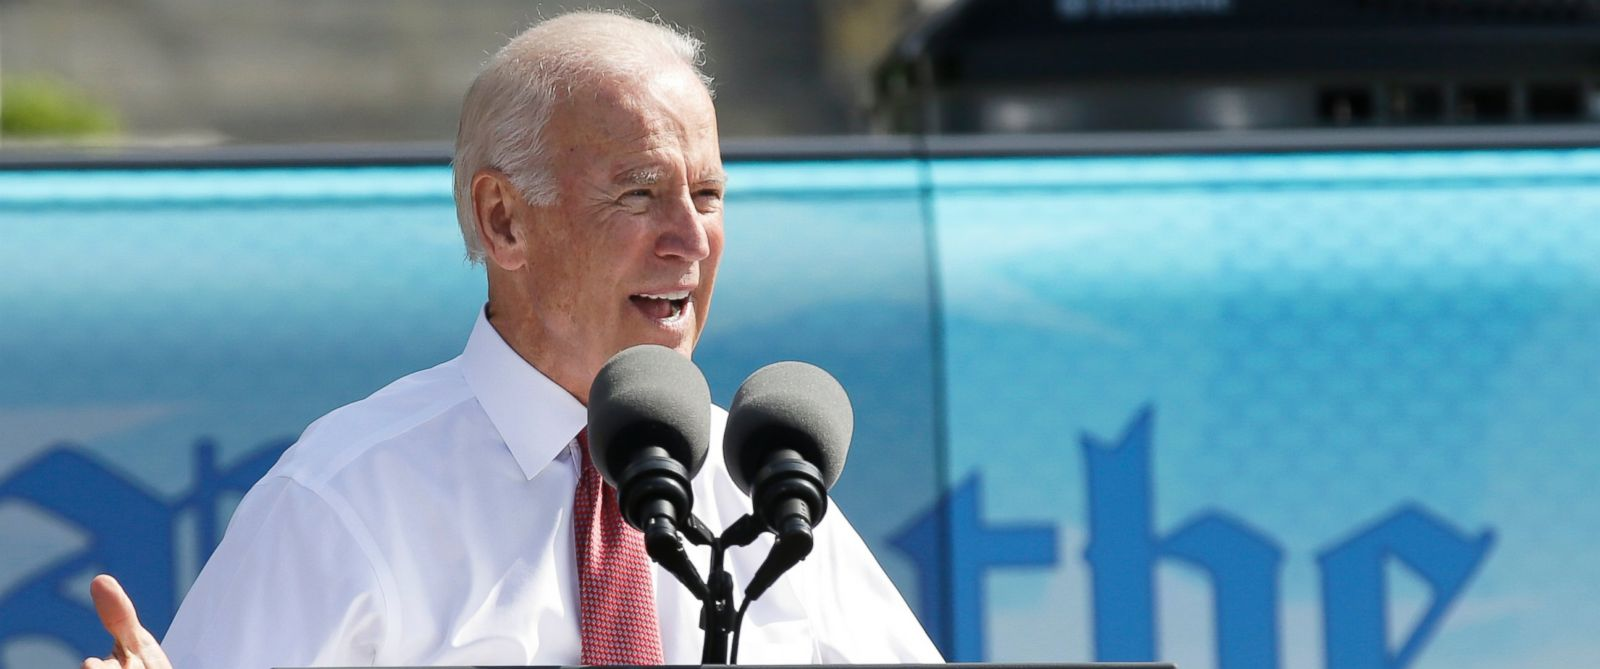 PHOTO: Vice President Joe Biden speaks during the kickoff of the Nuns on the Bus tour, Sept. 17, 2014, at the Statehouse in Des Moines, Iowa.